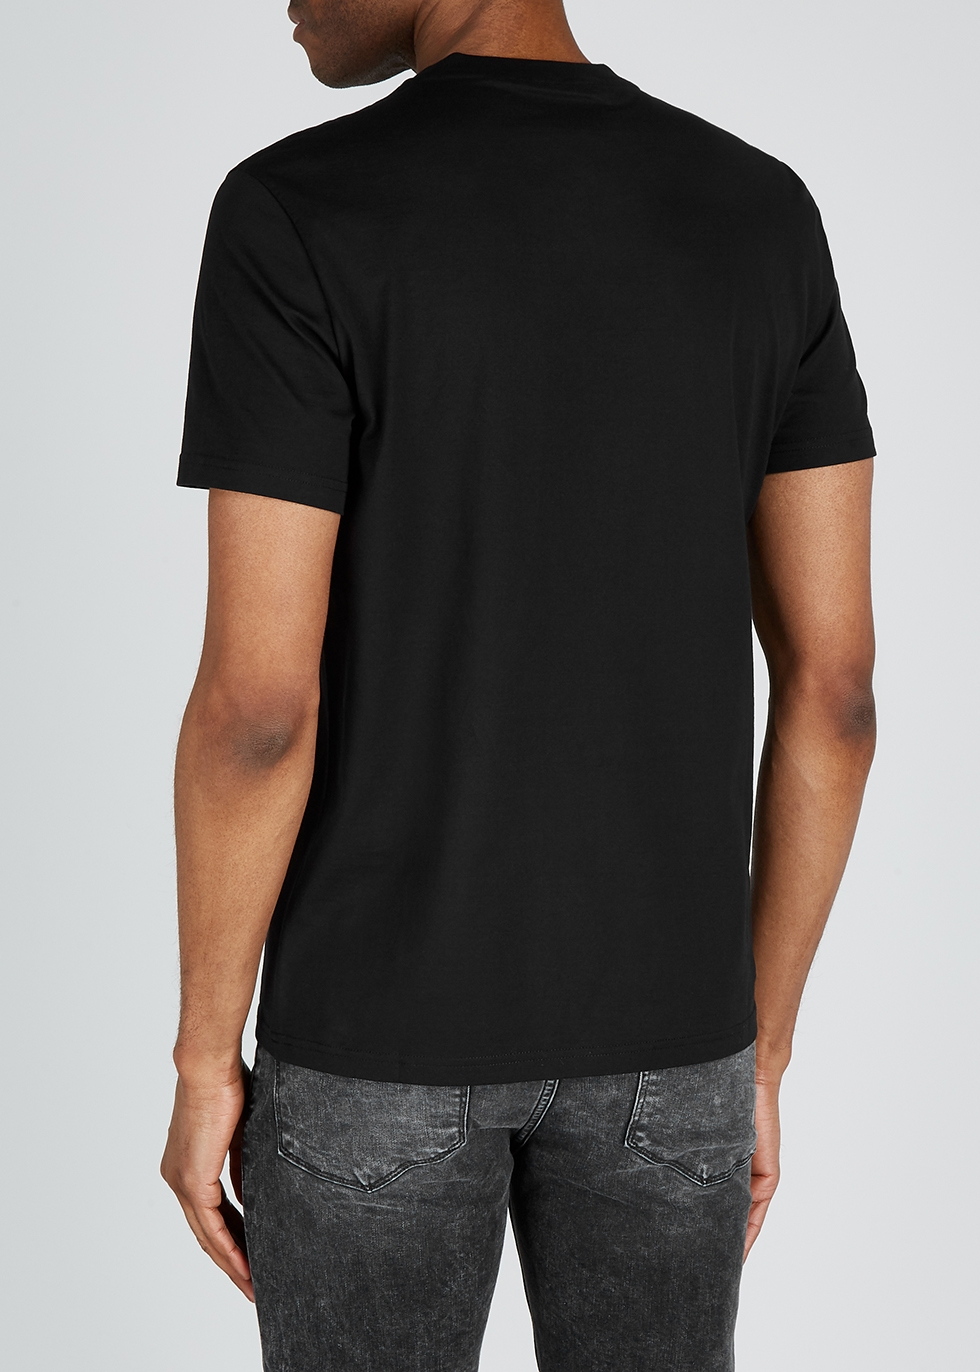 Black logo-print cotton T-shirt - Givenchy